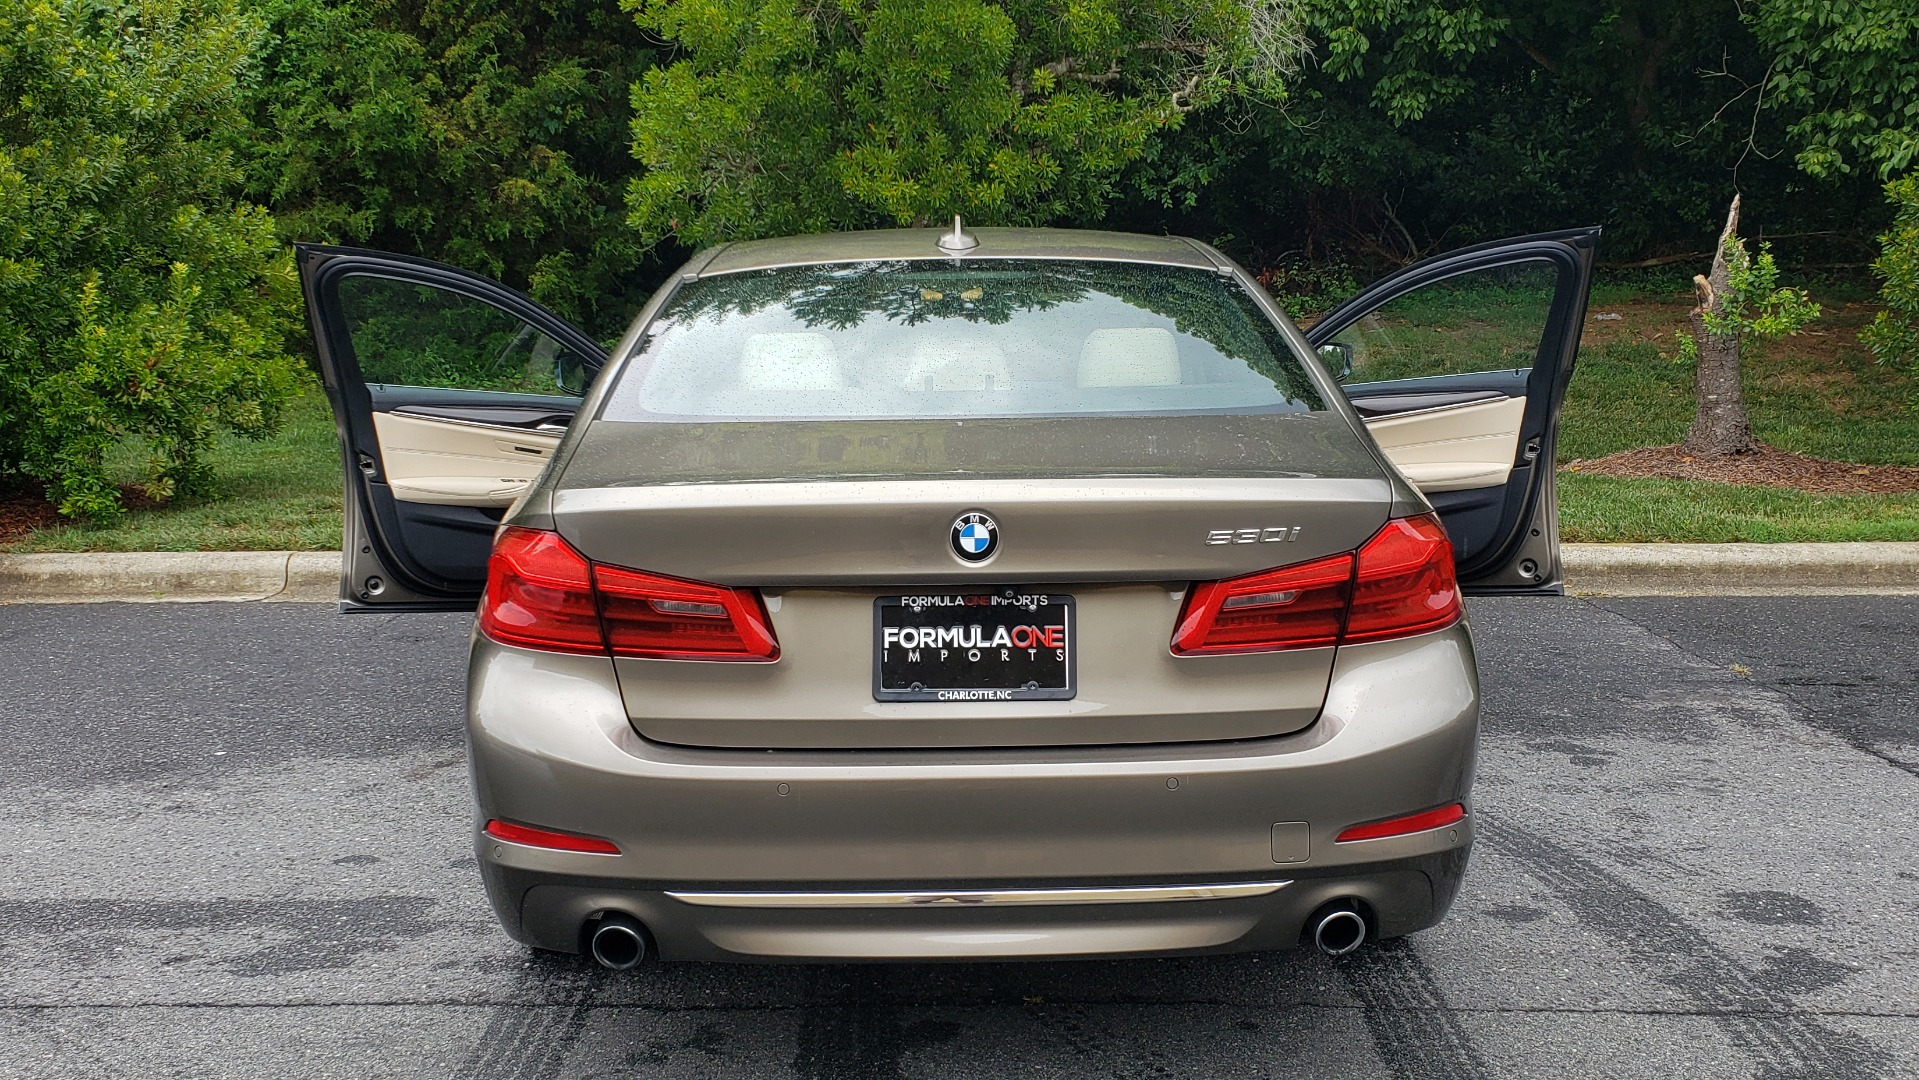 Used 2017 BMW 5 SERIES 530I PREMIUM / NAV / SUNROOF / DRVR ASST PLUS II / LUXURY for sale Sold at Formula Imports in Charlotte NC 28227 28